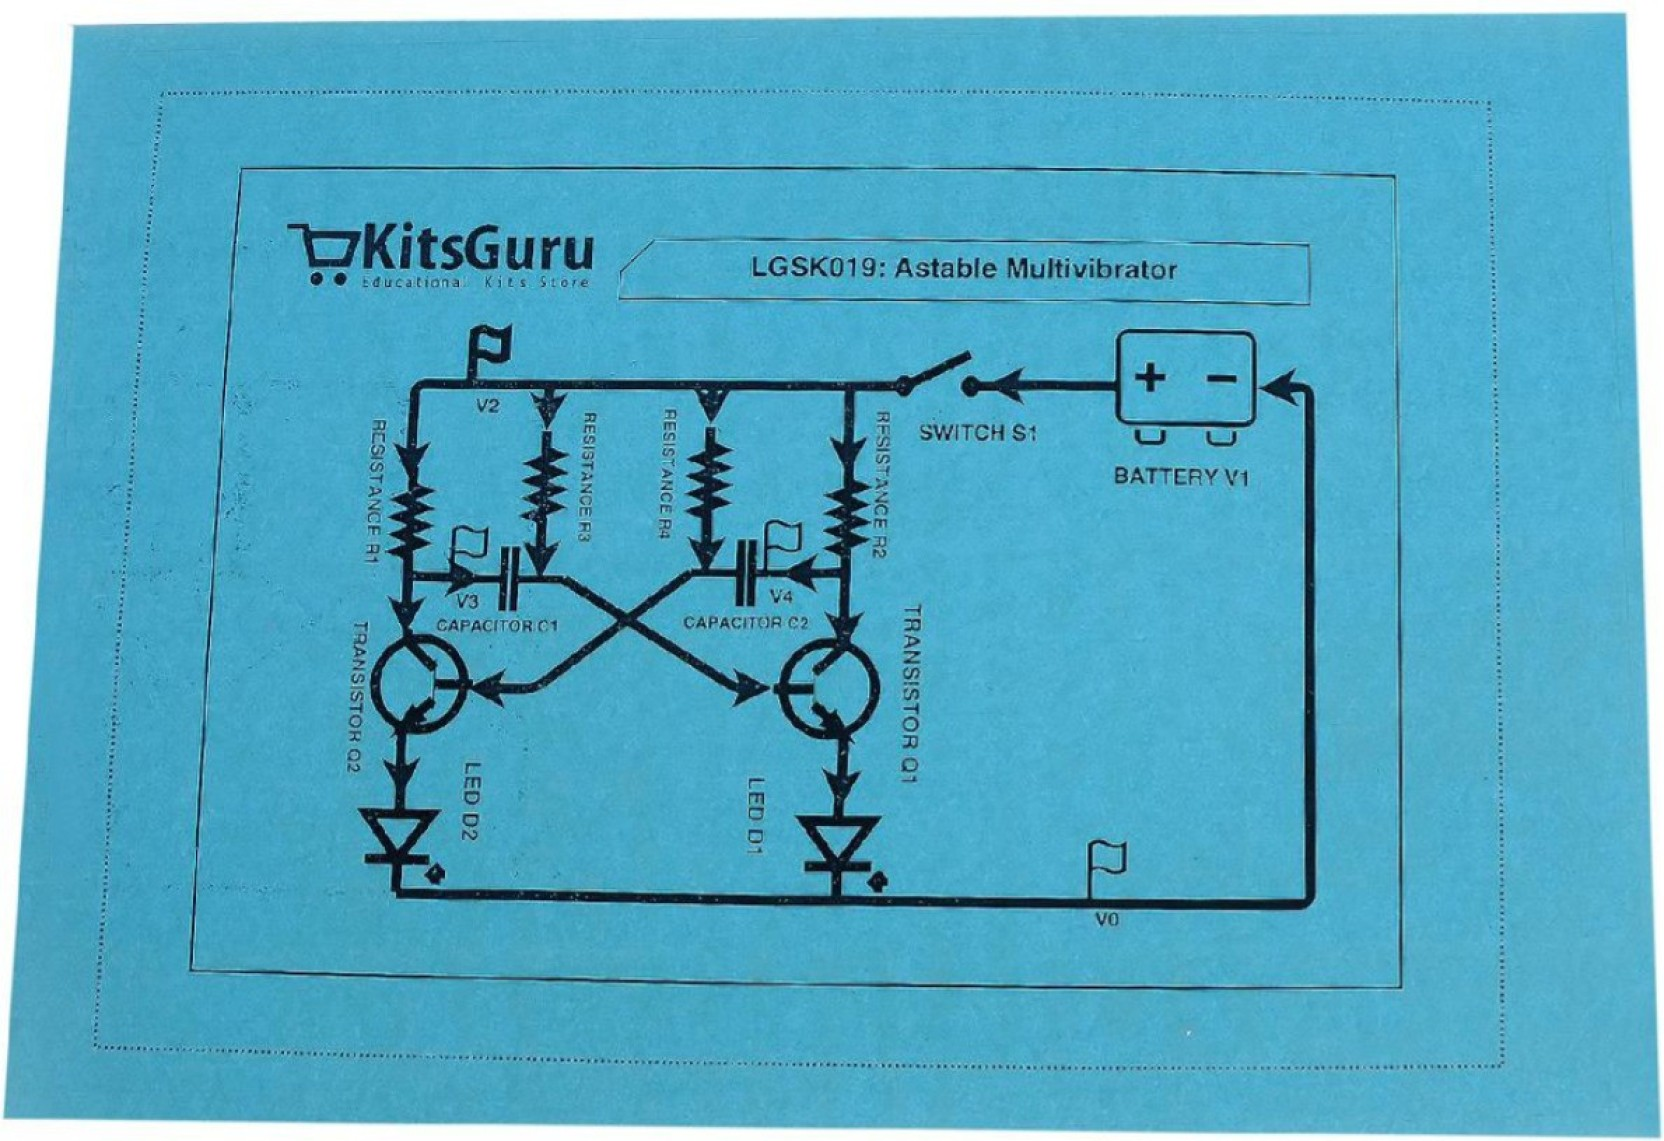 Left Is The Monostable Circuit Drawn As A Circuit Diagram